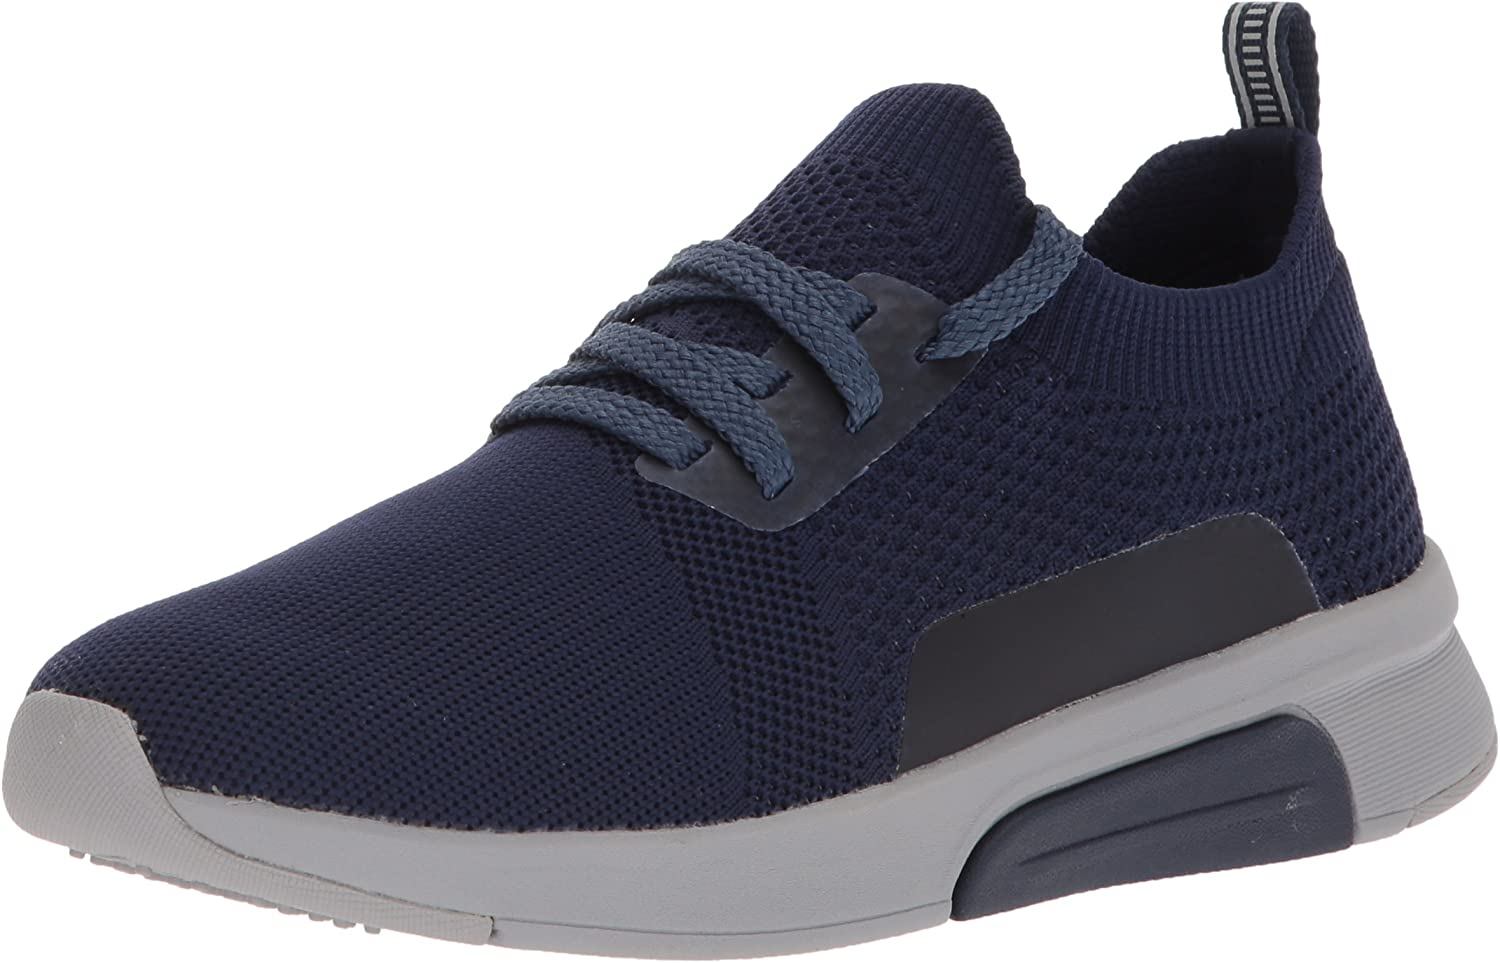 Mark Nason Los Angeles Womens Groves Sneaker